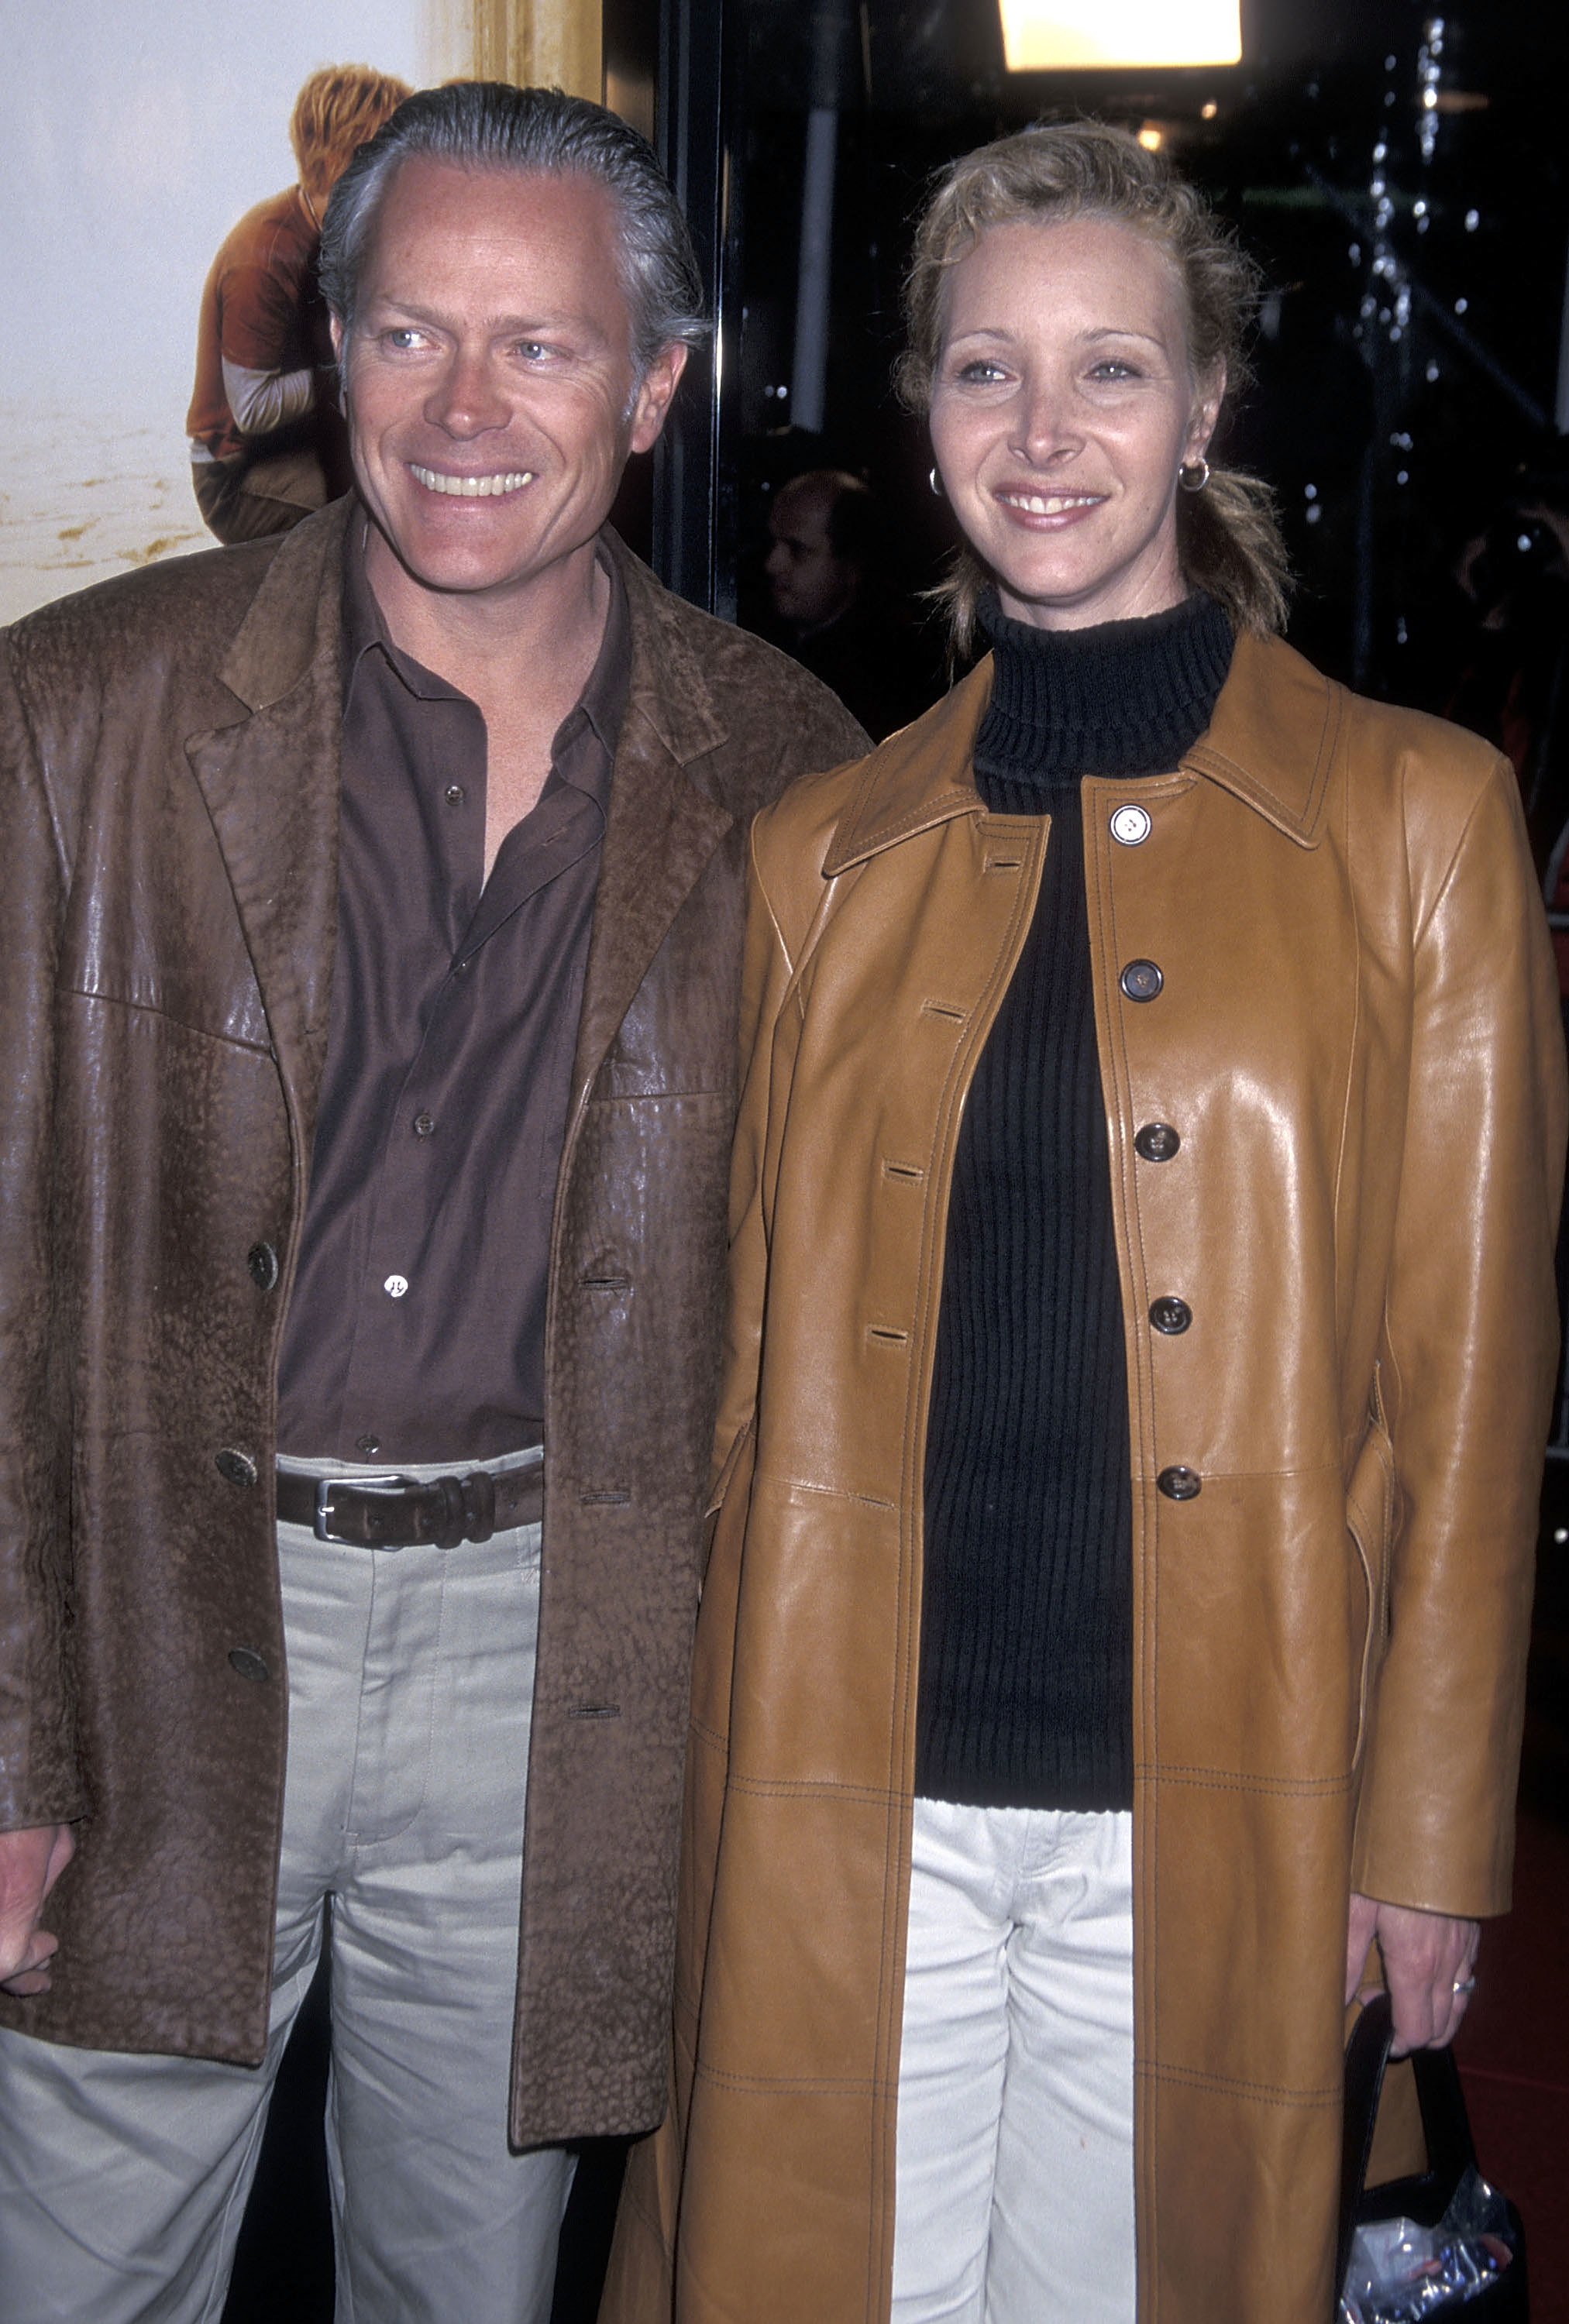 wearing long matching leather coats in 2001